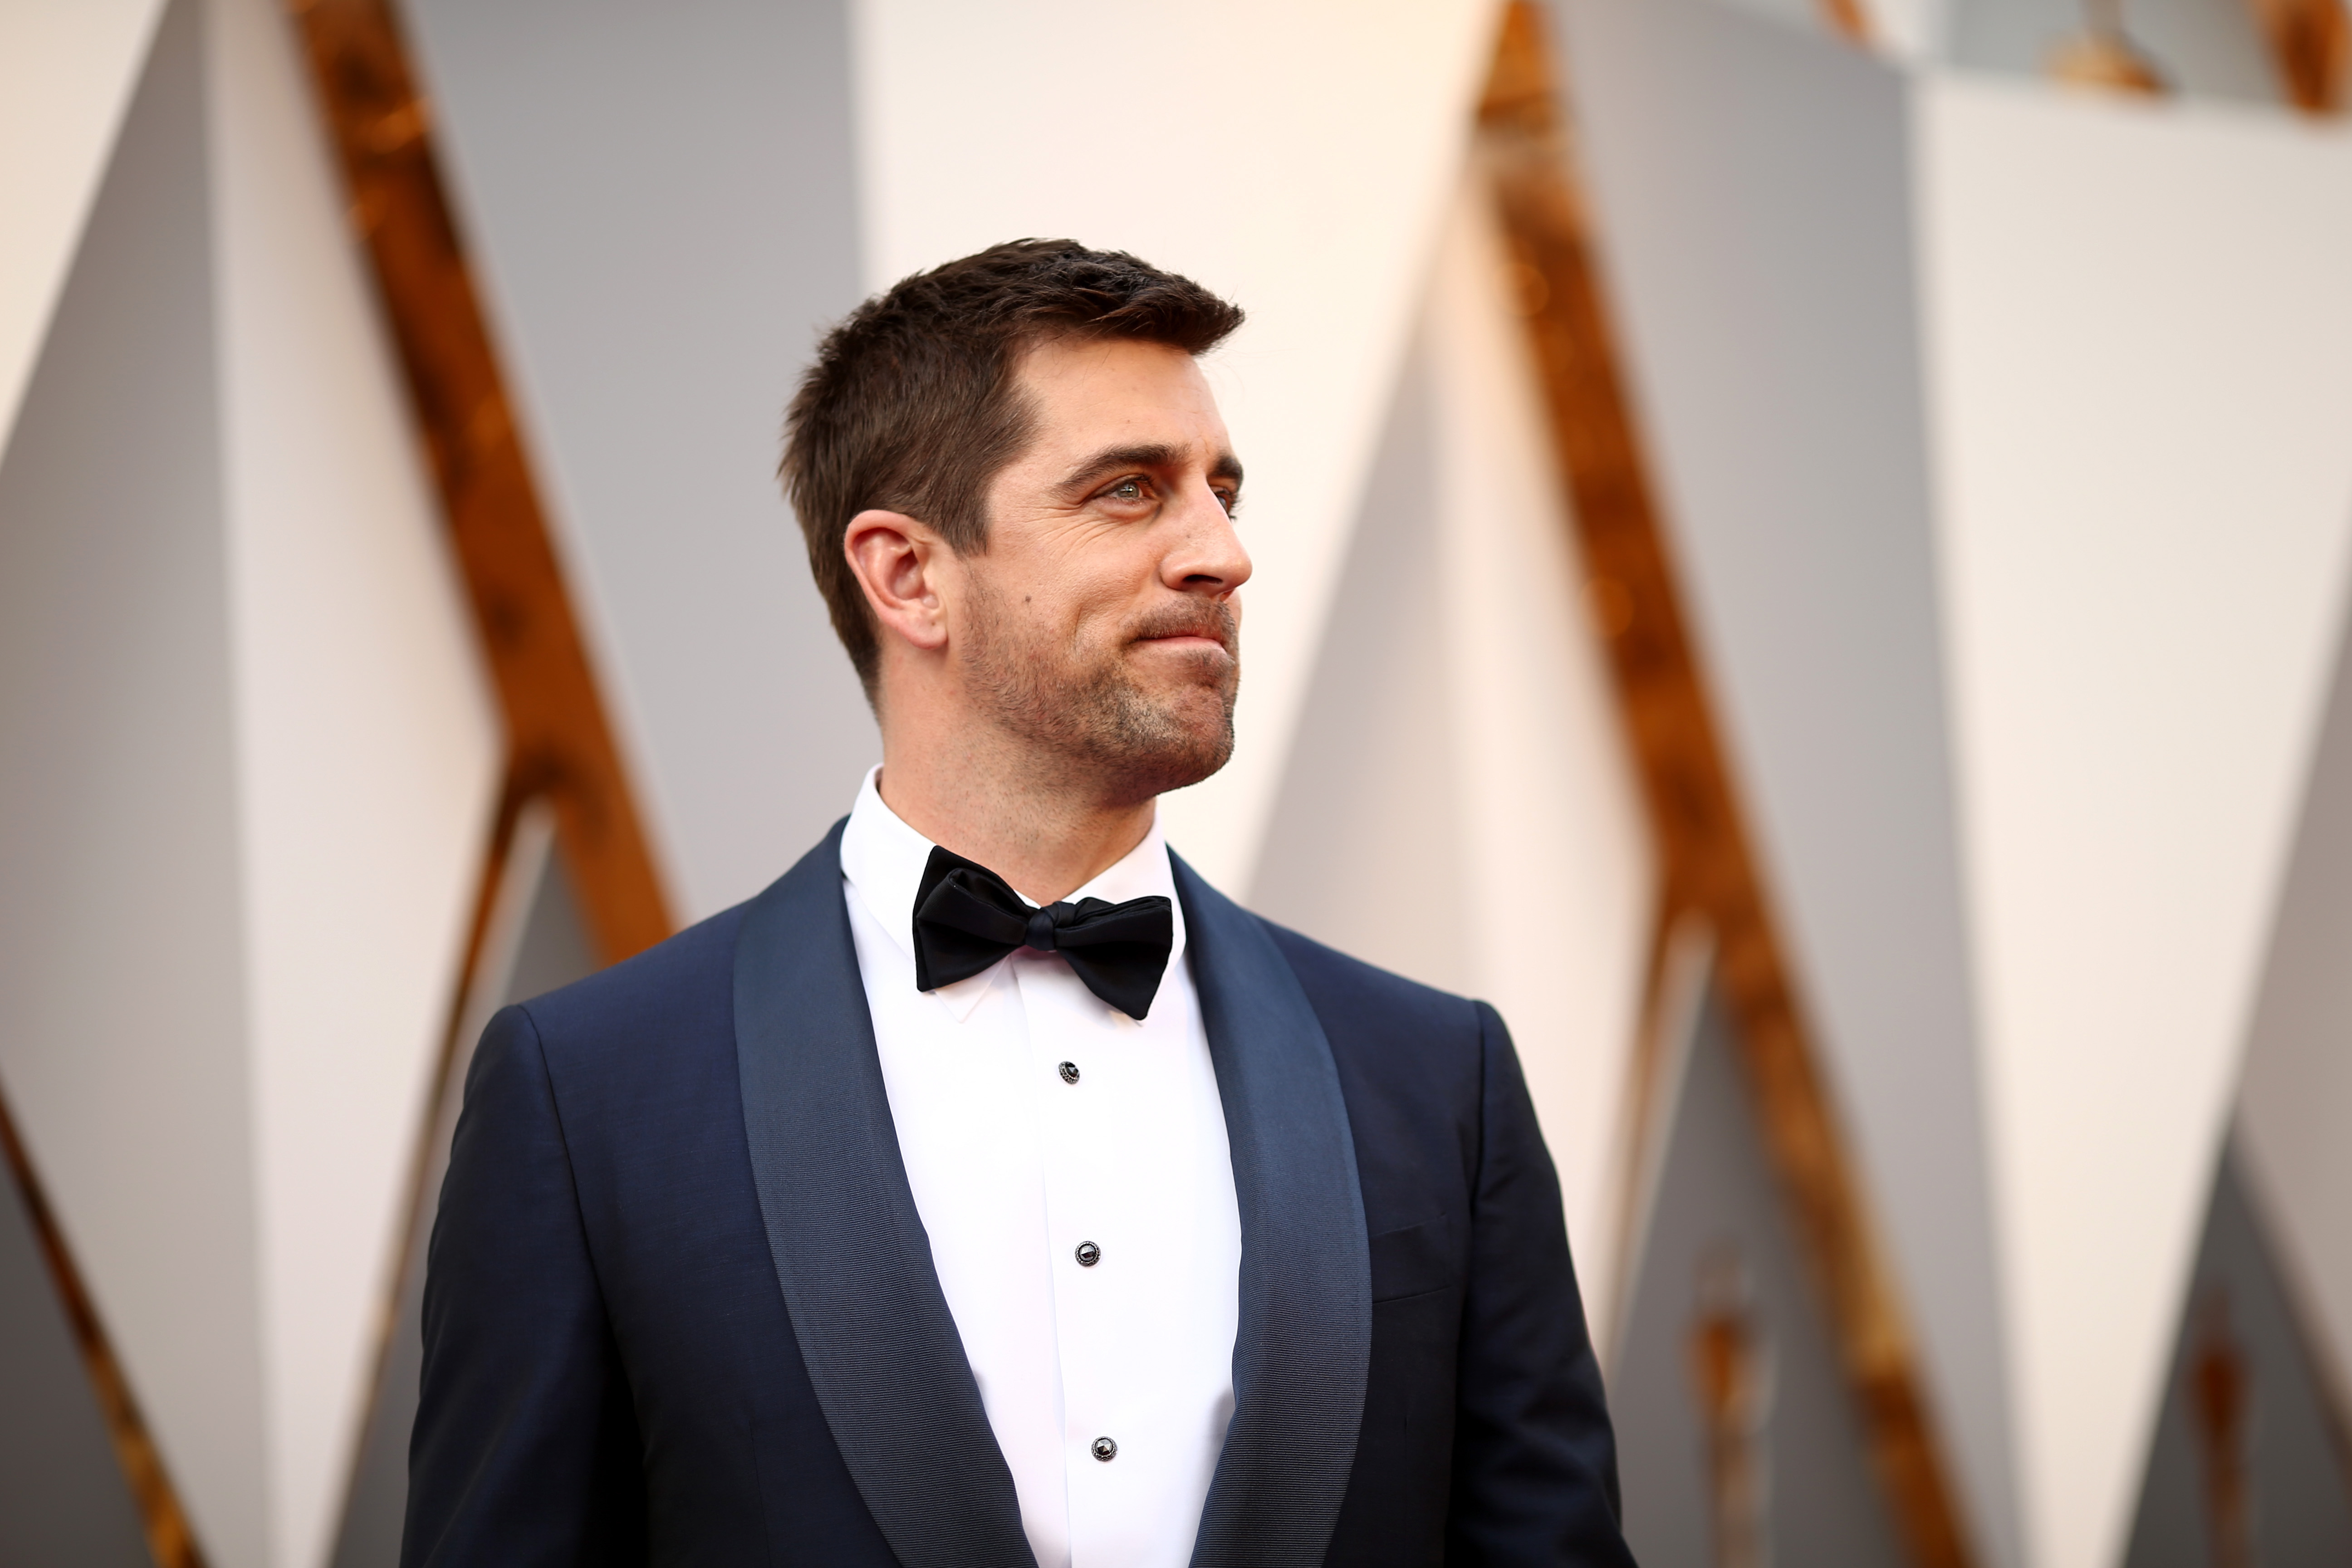 Rodgers at the Academy Awards Ceremony this year.